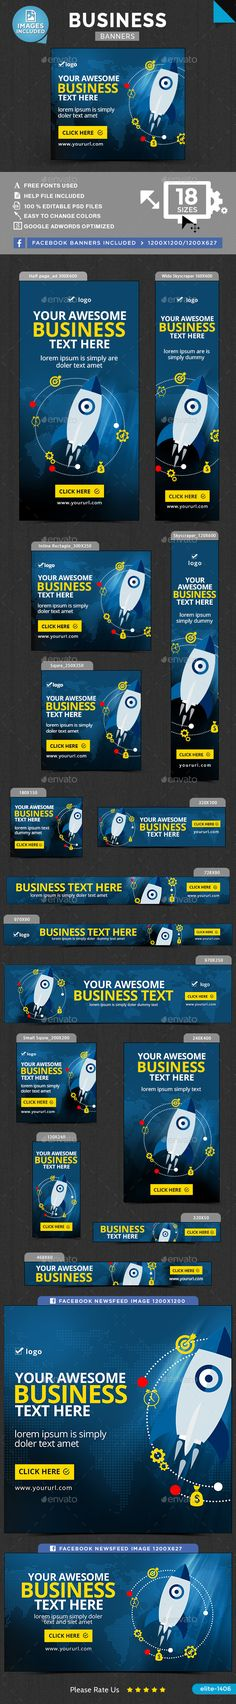 Business Web Banners Template PSD. Download here: http://graphicriver.net/item/business-banners/15823761?ref=ksioks